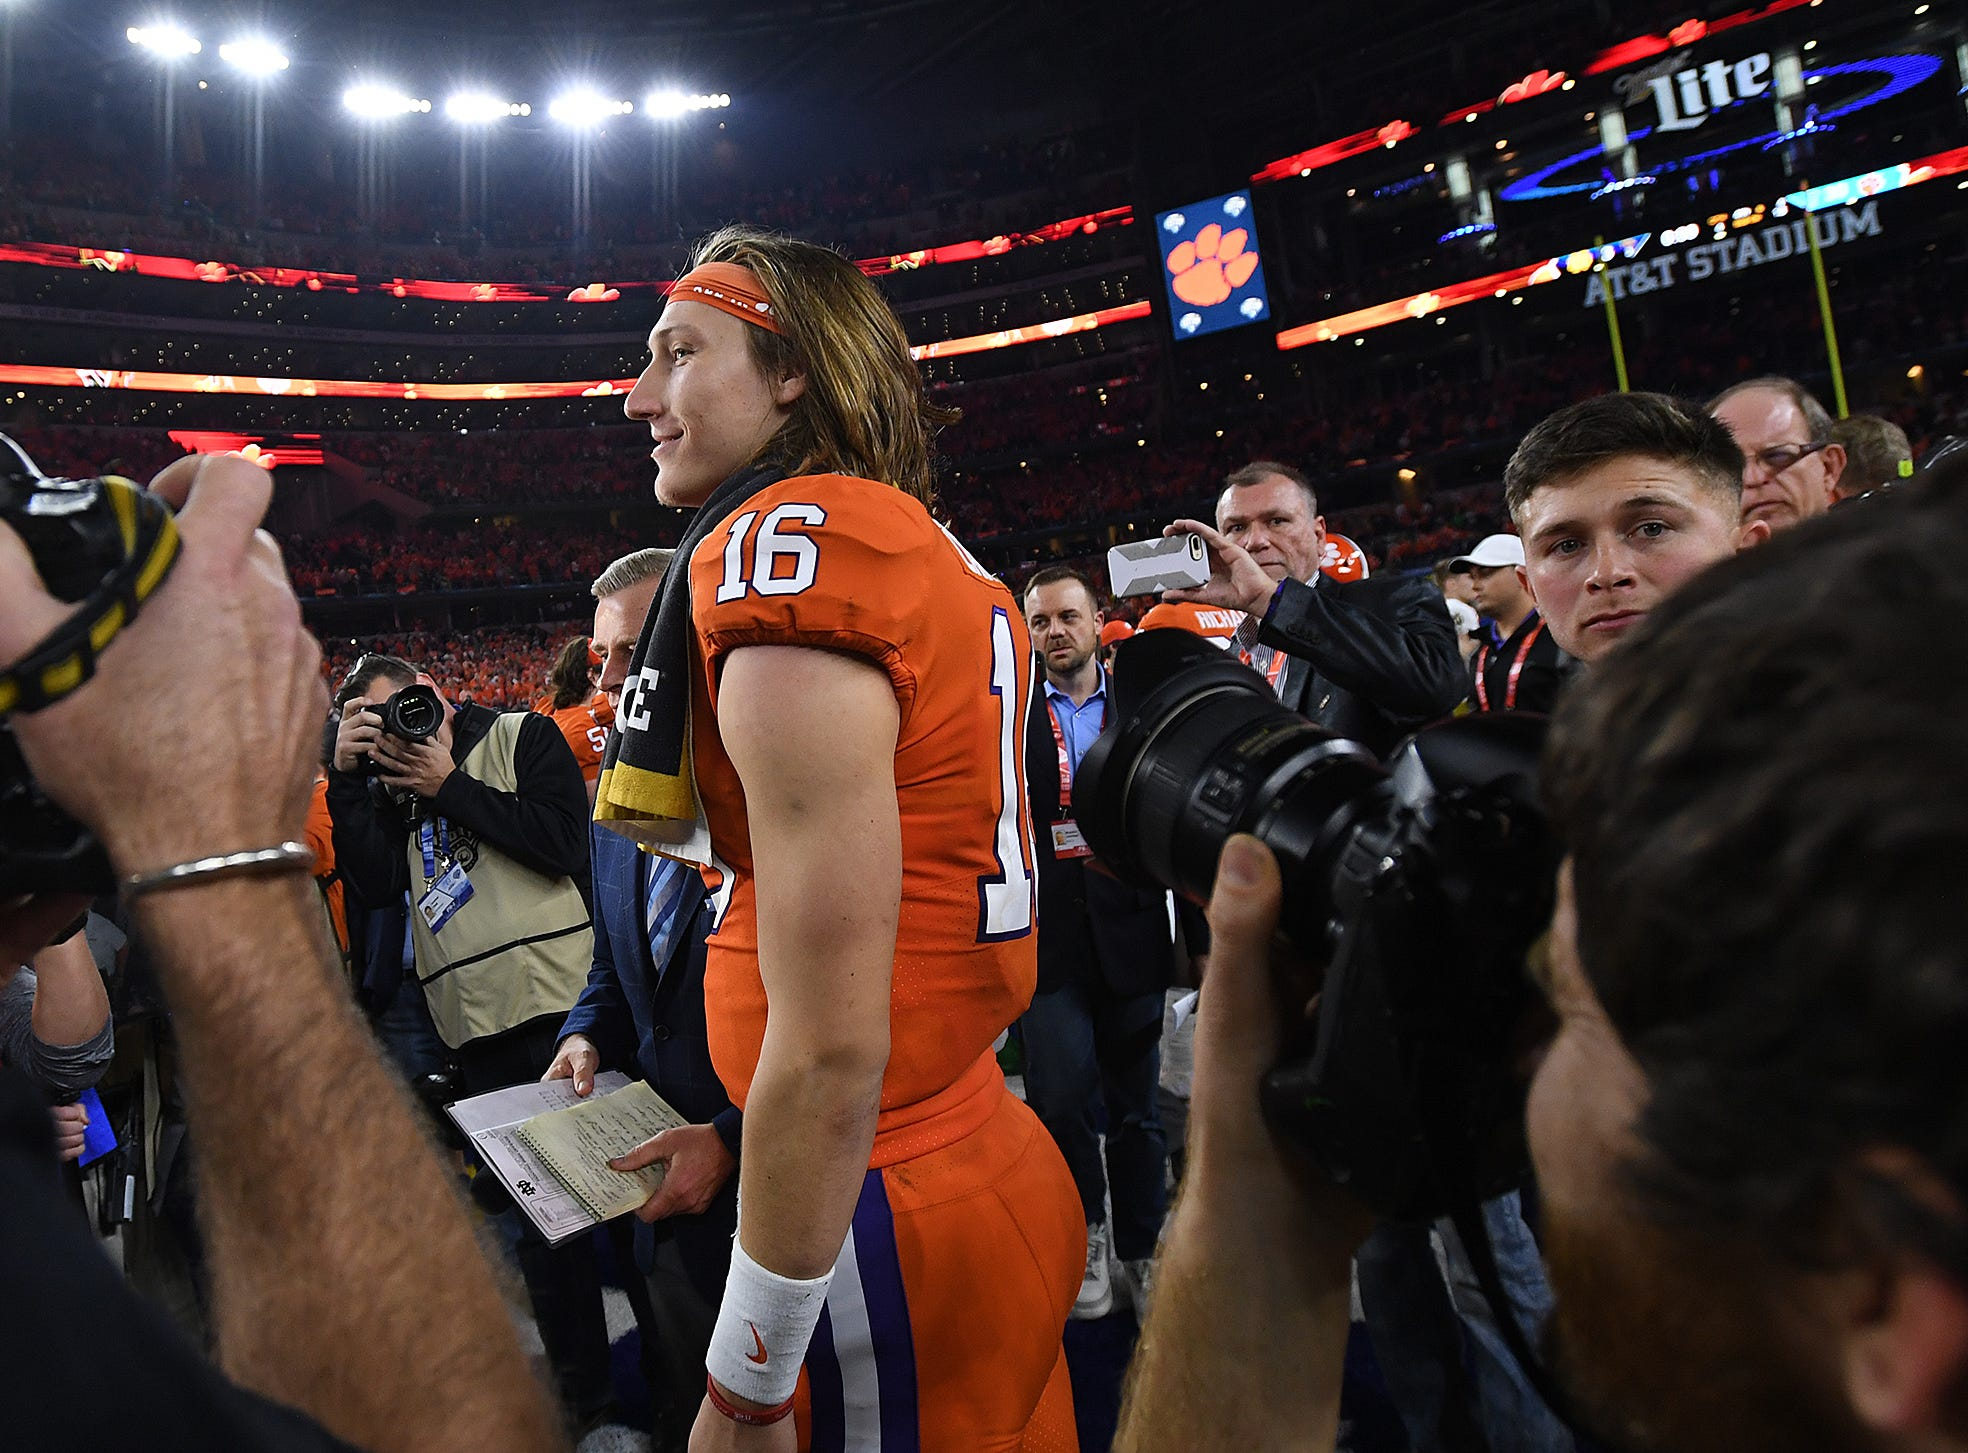 Clemson quarterback Trevor Lawrence (16) after the Tigers 30-3 win over Notre Dame in the Goodyear Cotton Bowl at AT&T stadium in Arlington, TX Saturday, December 29, 2018.